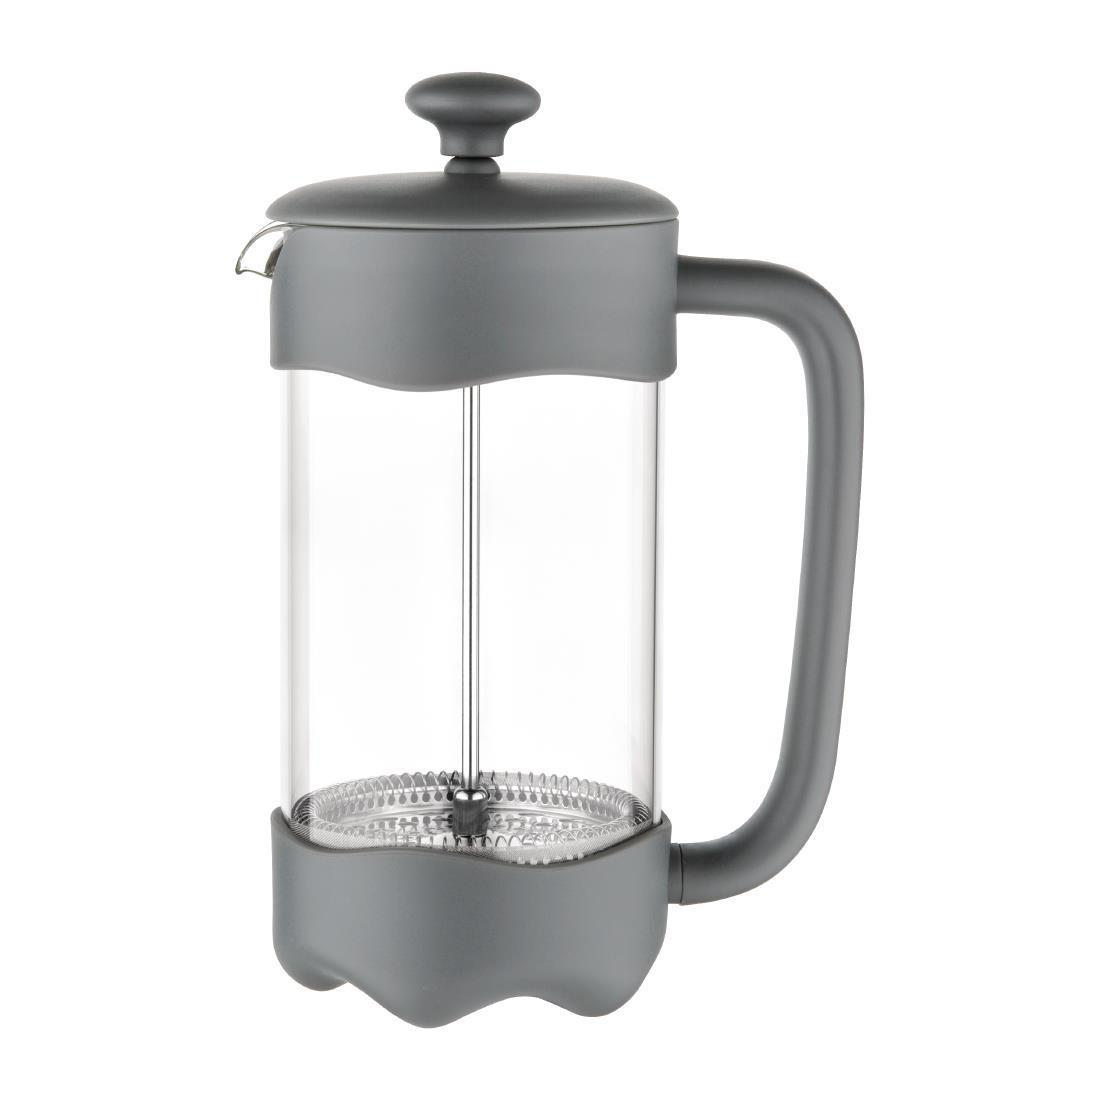 Olympia Contemporary Cafetiere Grey 8 Cup